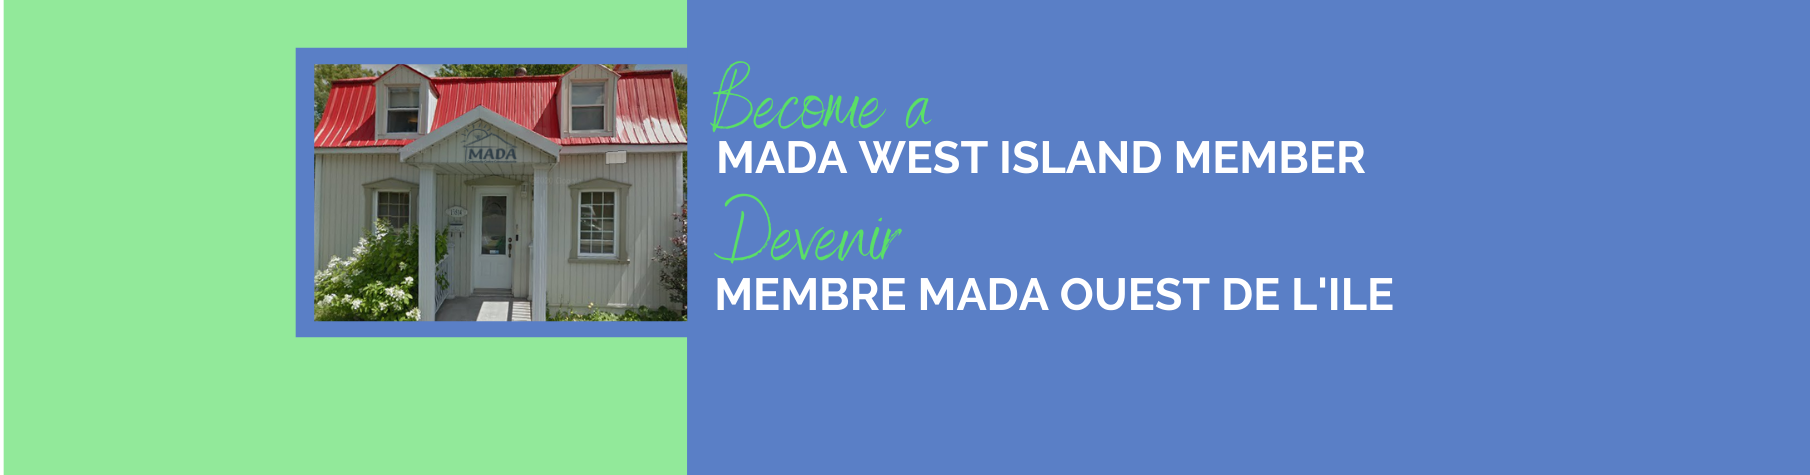 MADA West Island Member Sign Up